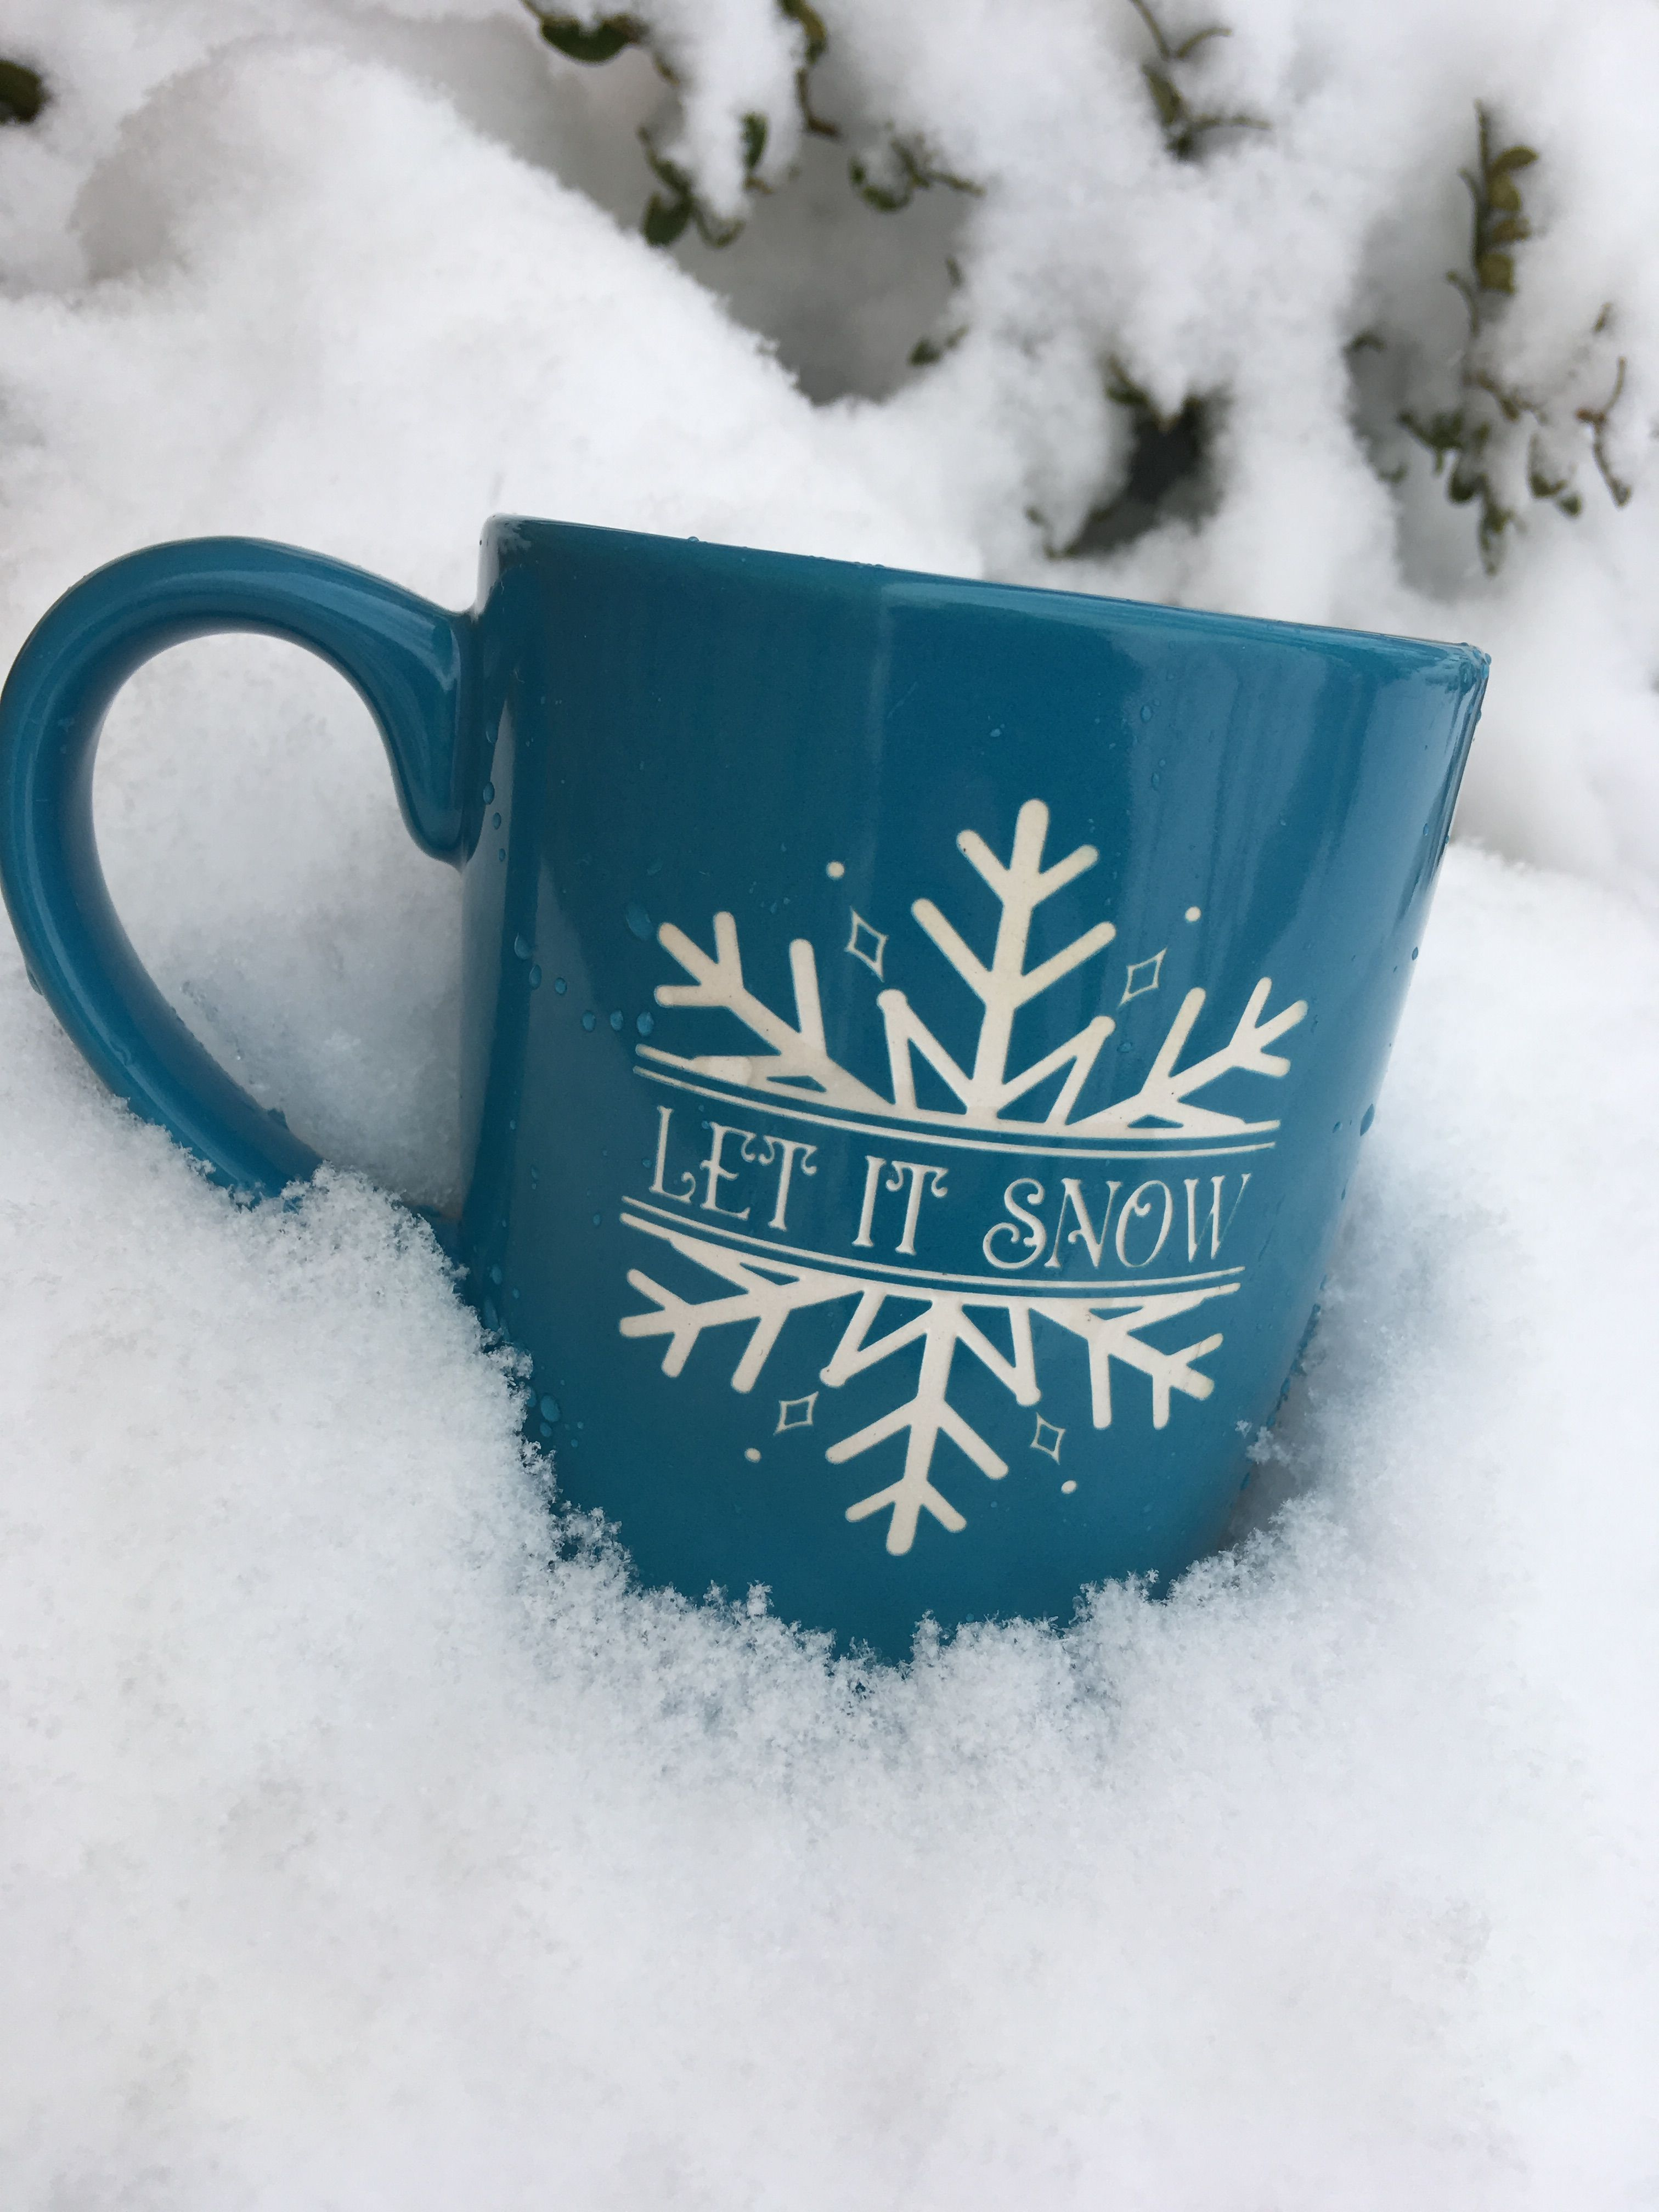 Sandblasted deep etched mug by Rock of Etches (Facebook